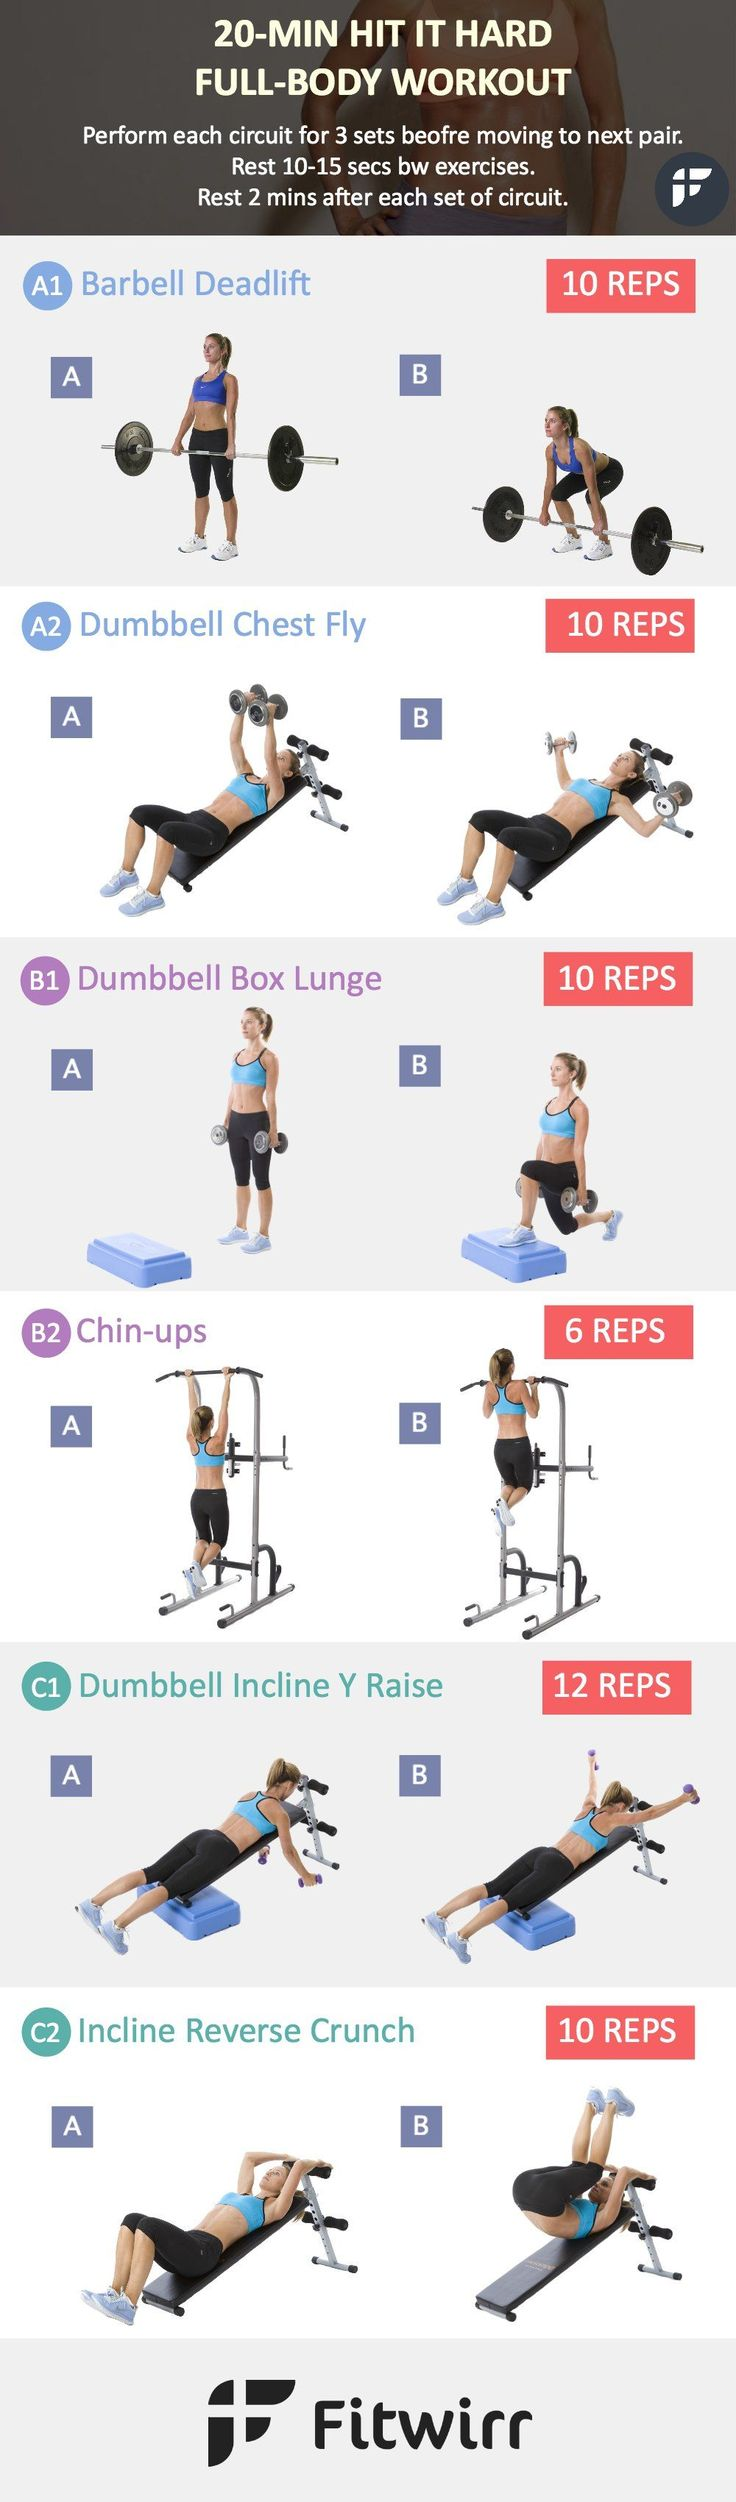 20-Minute Hit It Hard Full-Body Workout. Worry that you get bulky by lifting weights? Take Jessica Alba, Jessica Biel and Cameron Diaz who religiously lift weight but never bulked up.  Weight training makes women lean, toned and sleek. Lay down your fear, hit they gym and give this workout a try.